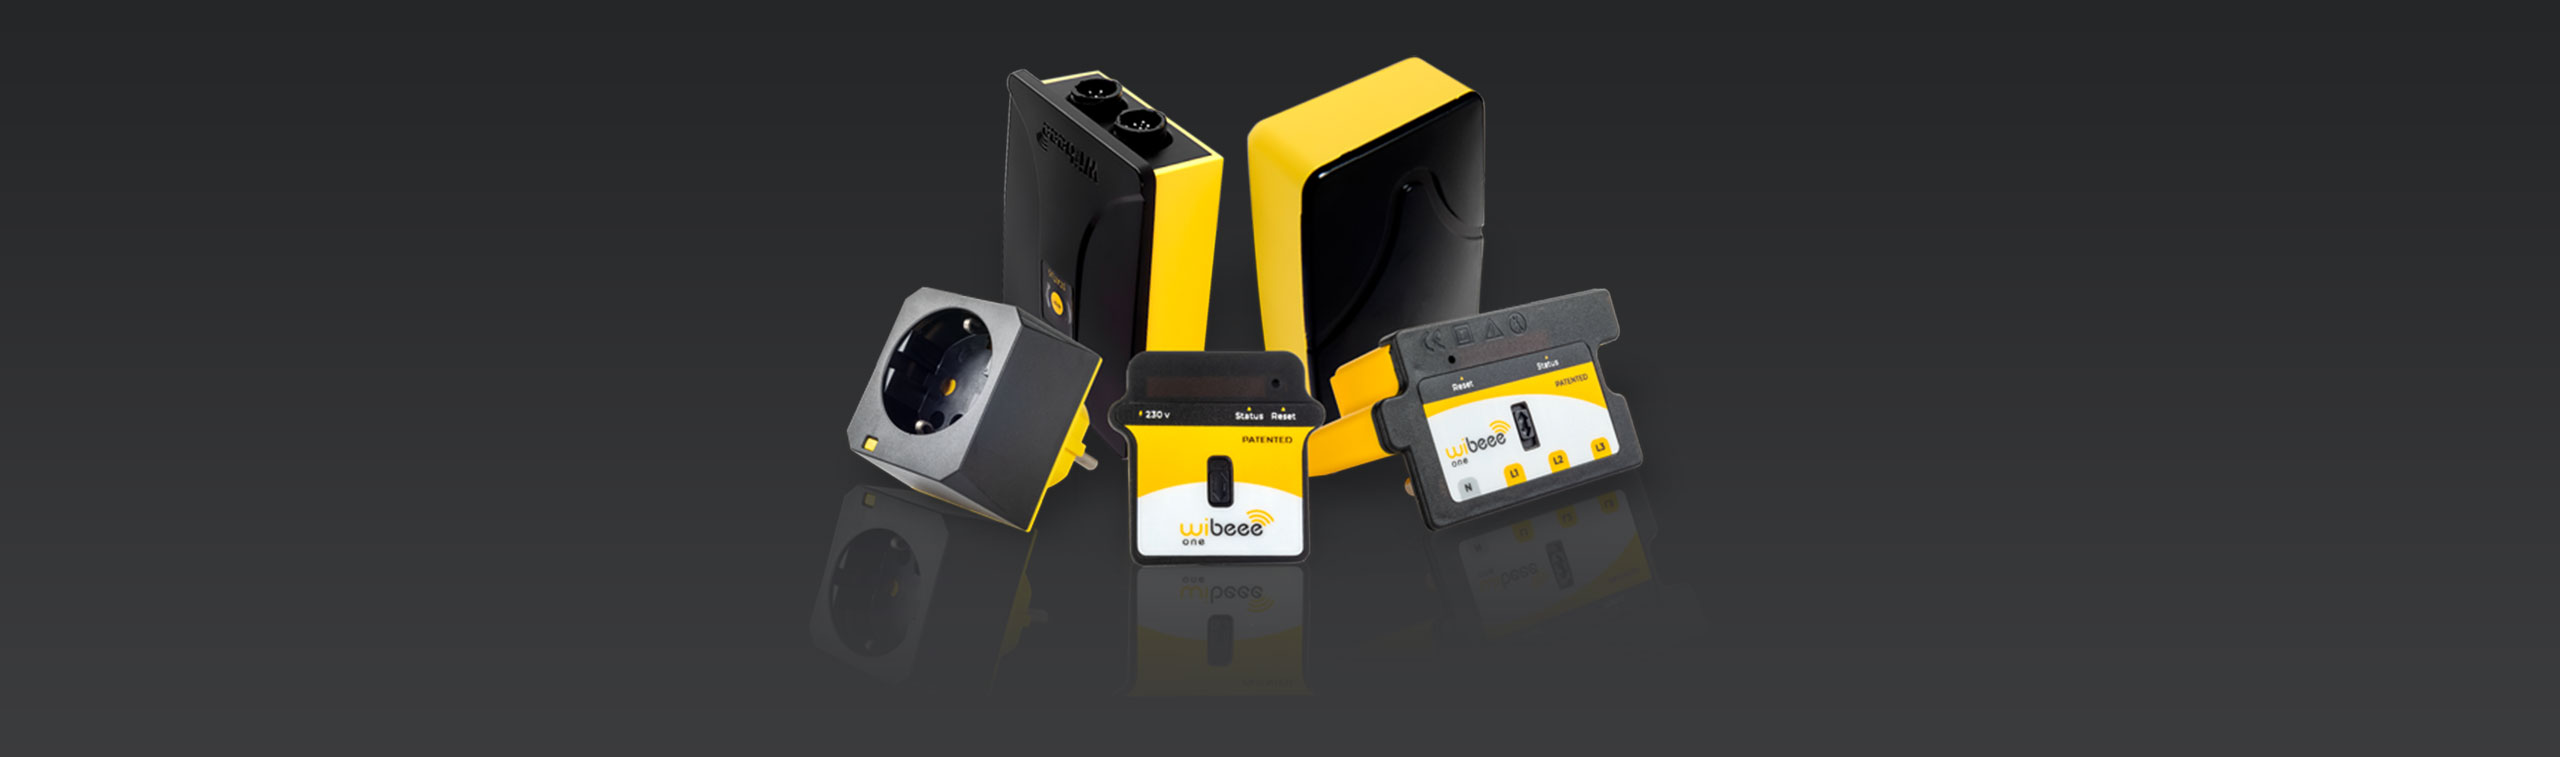 Wibee devices